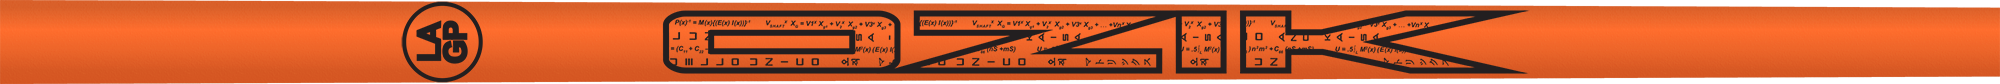 Ozik White Tie: Neon Orange Black Matte - Wood 50 A